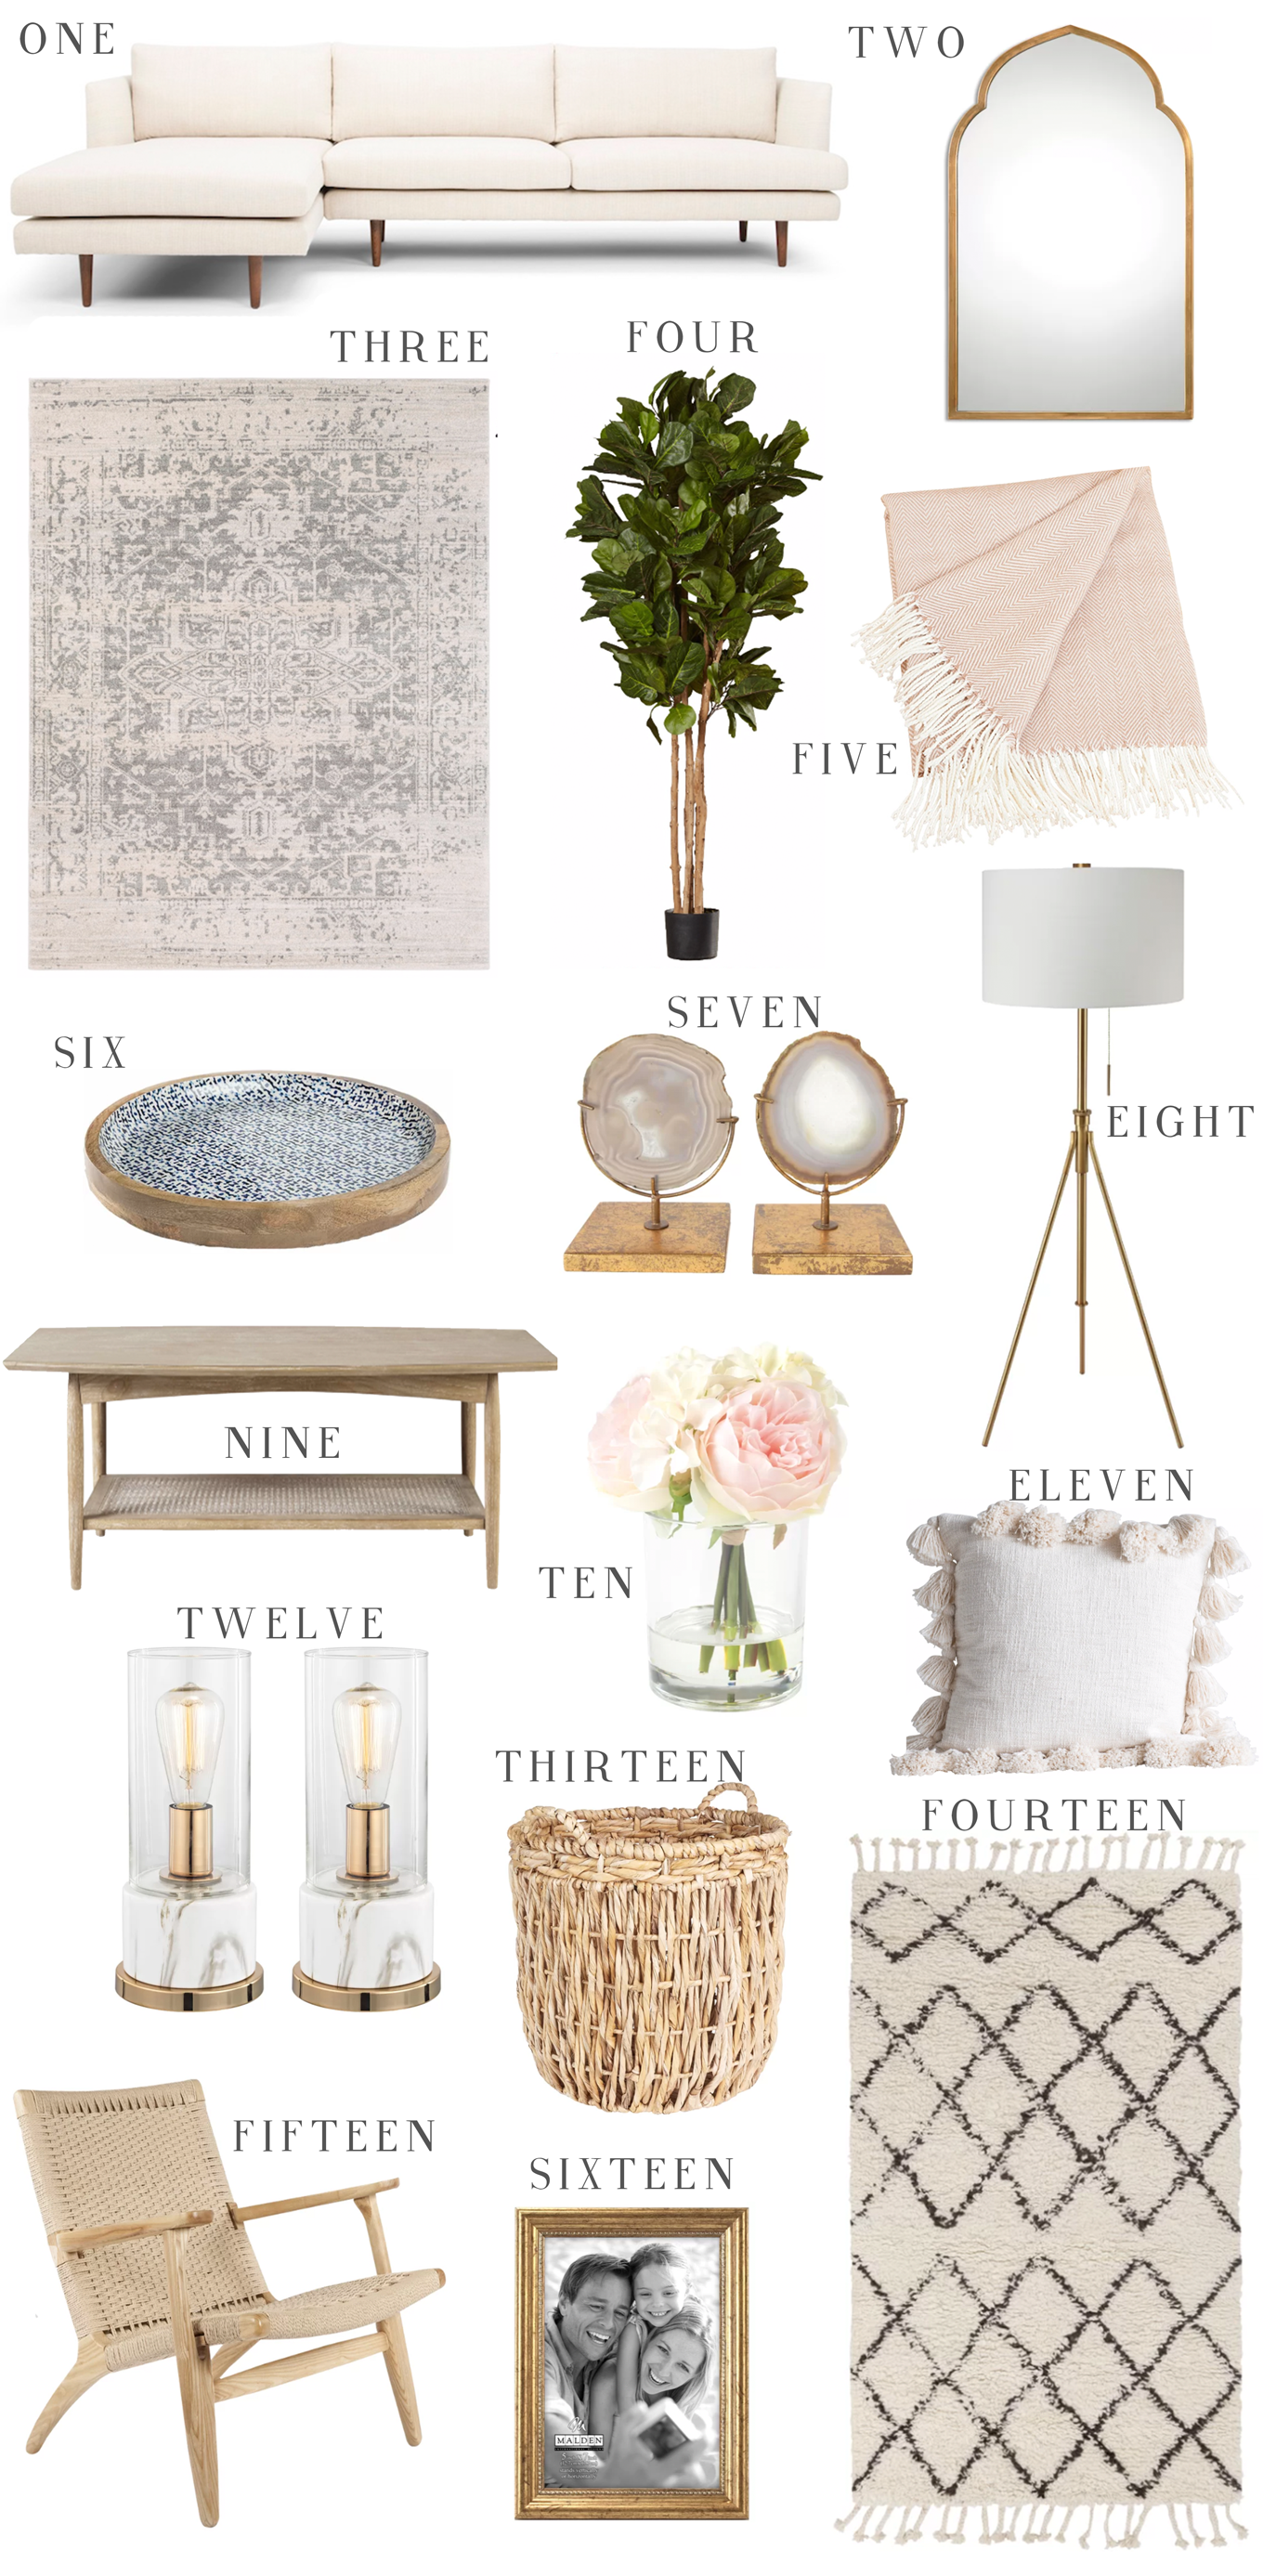 16 Decor Updates Your Home Is Begging For #homedecoraccessories